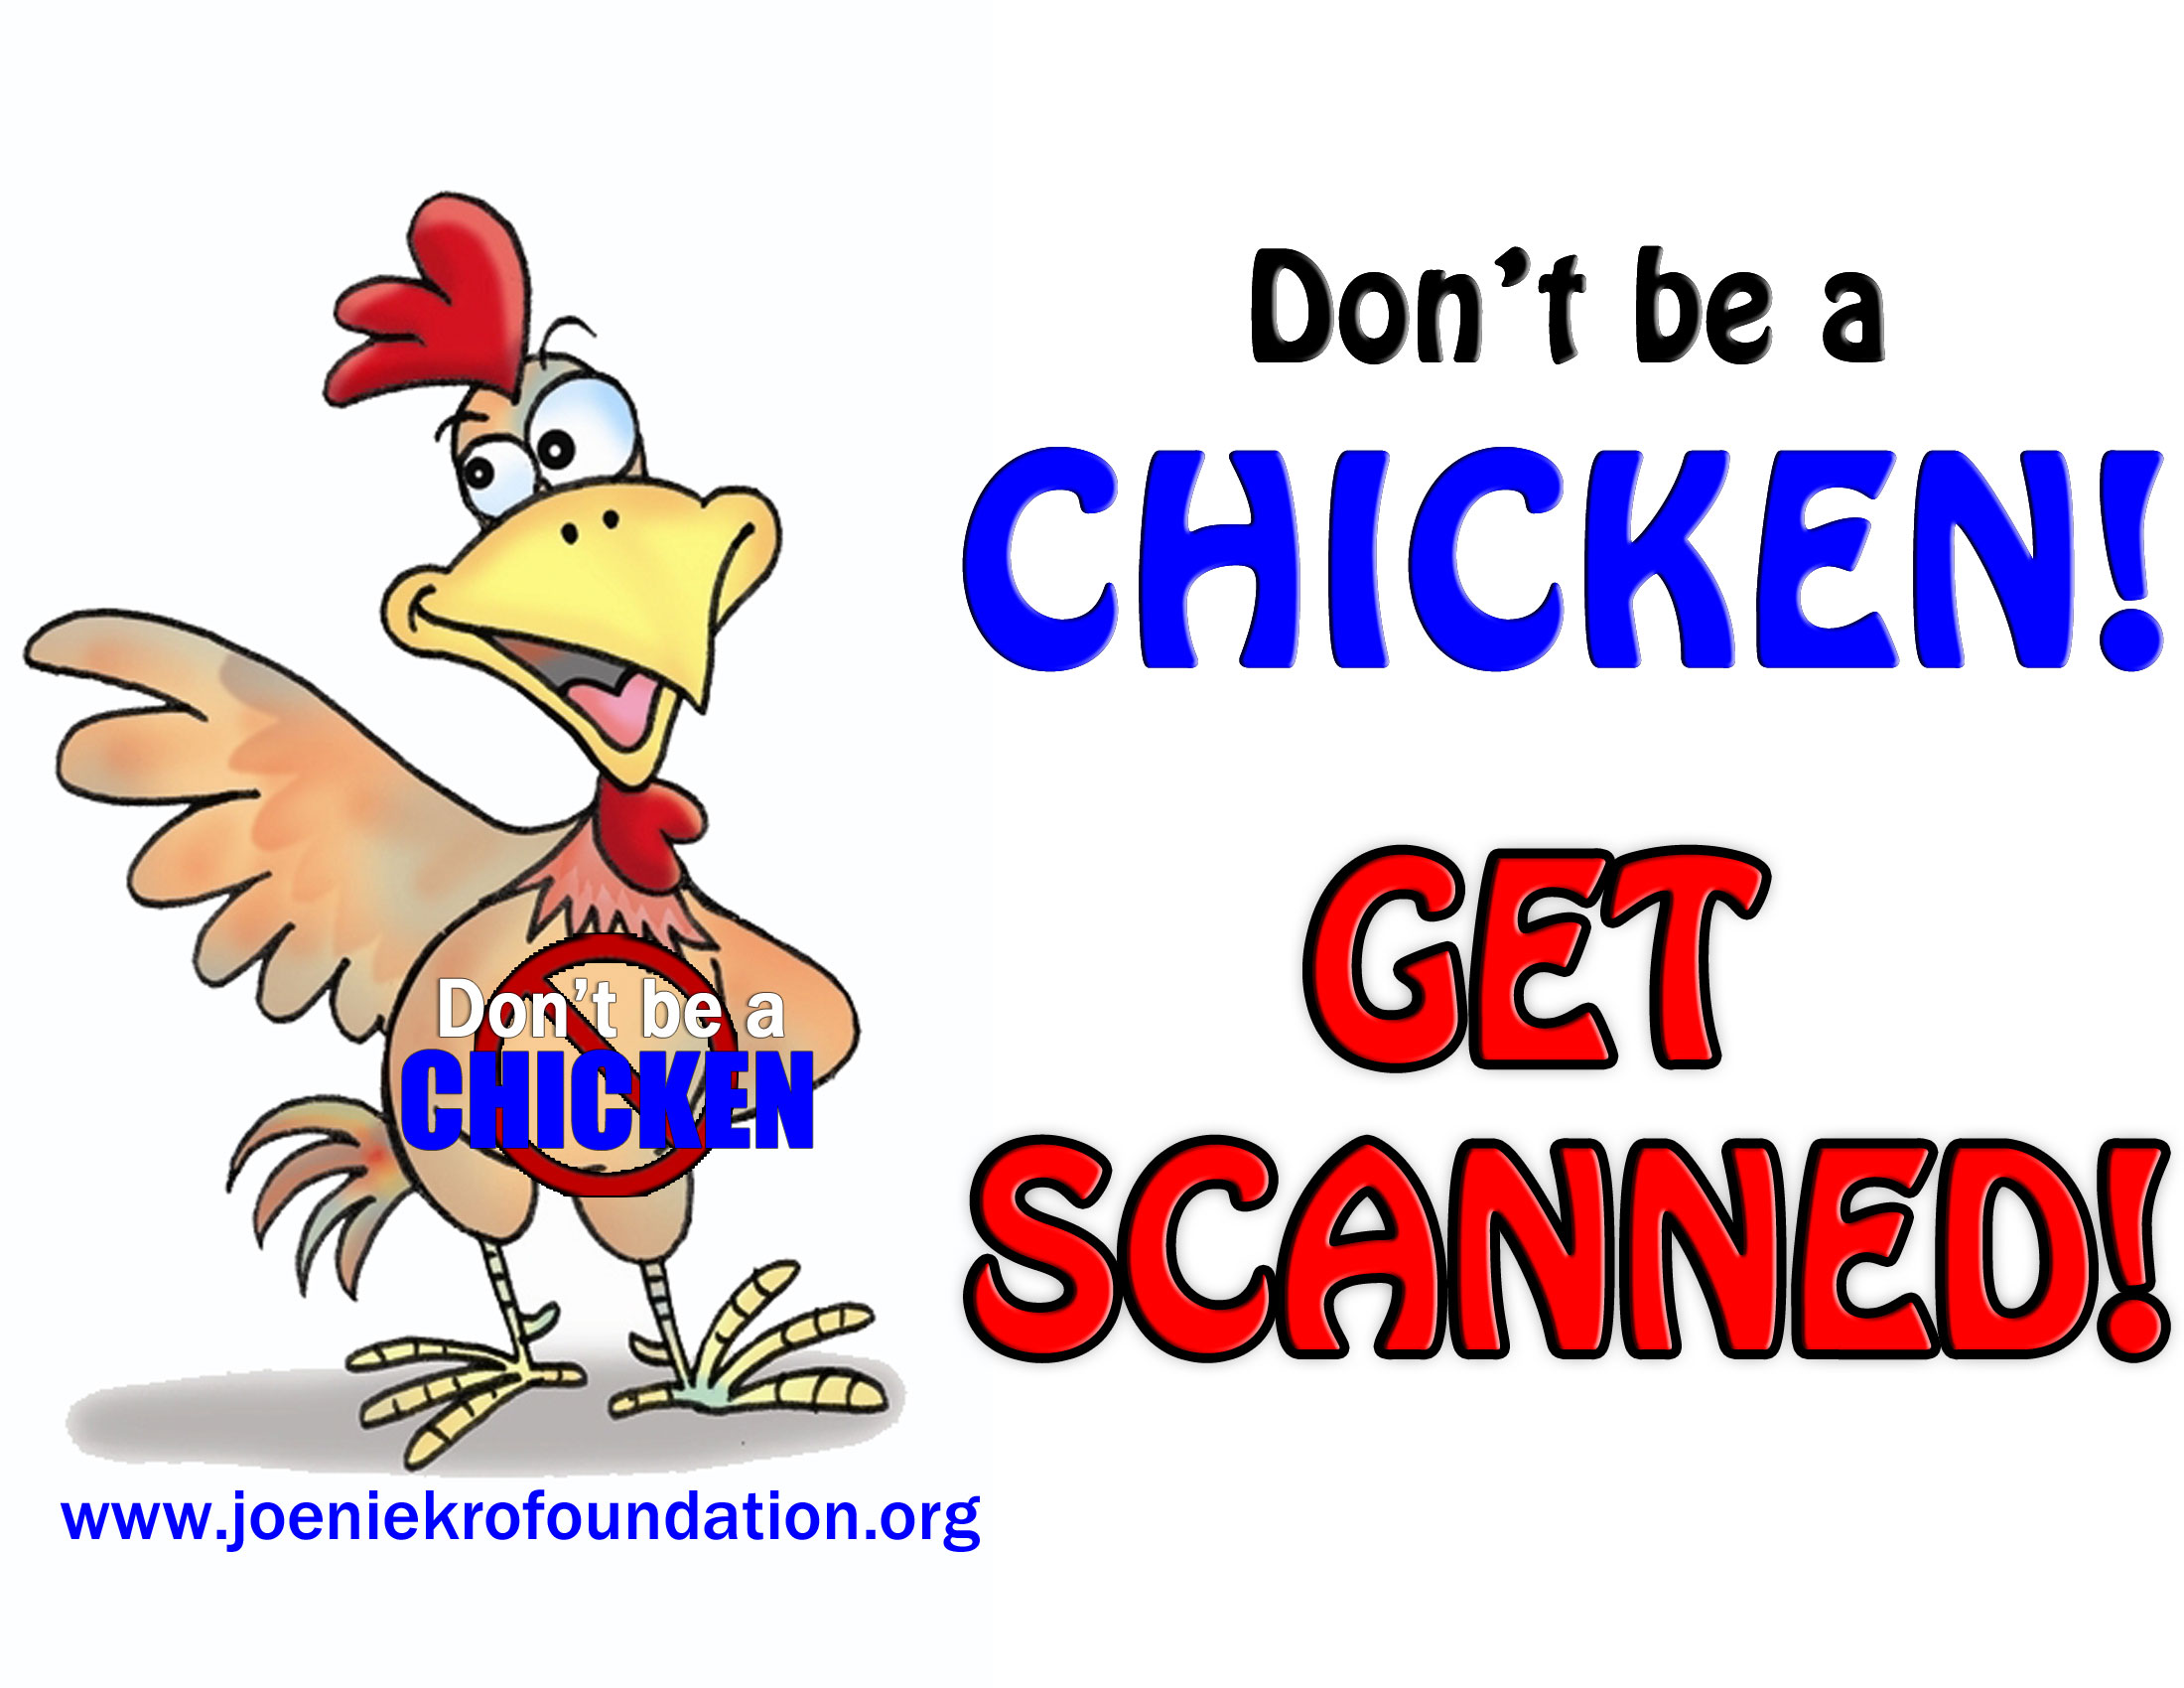 https://www.joeniekrofoundation.com/aneurysms/dont-be-a-chicken/